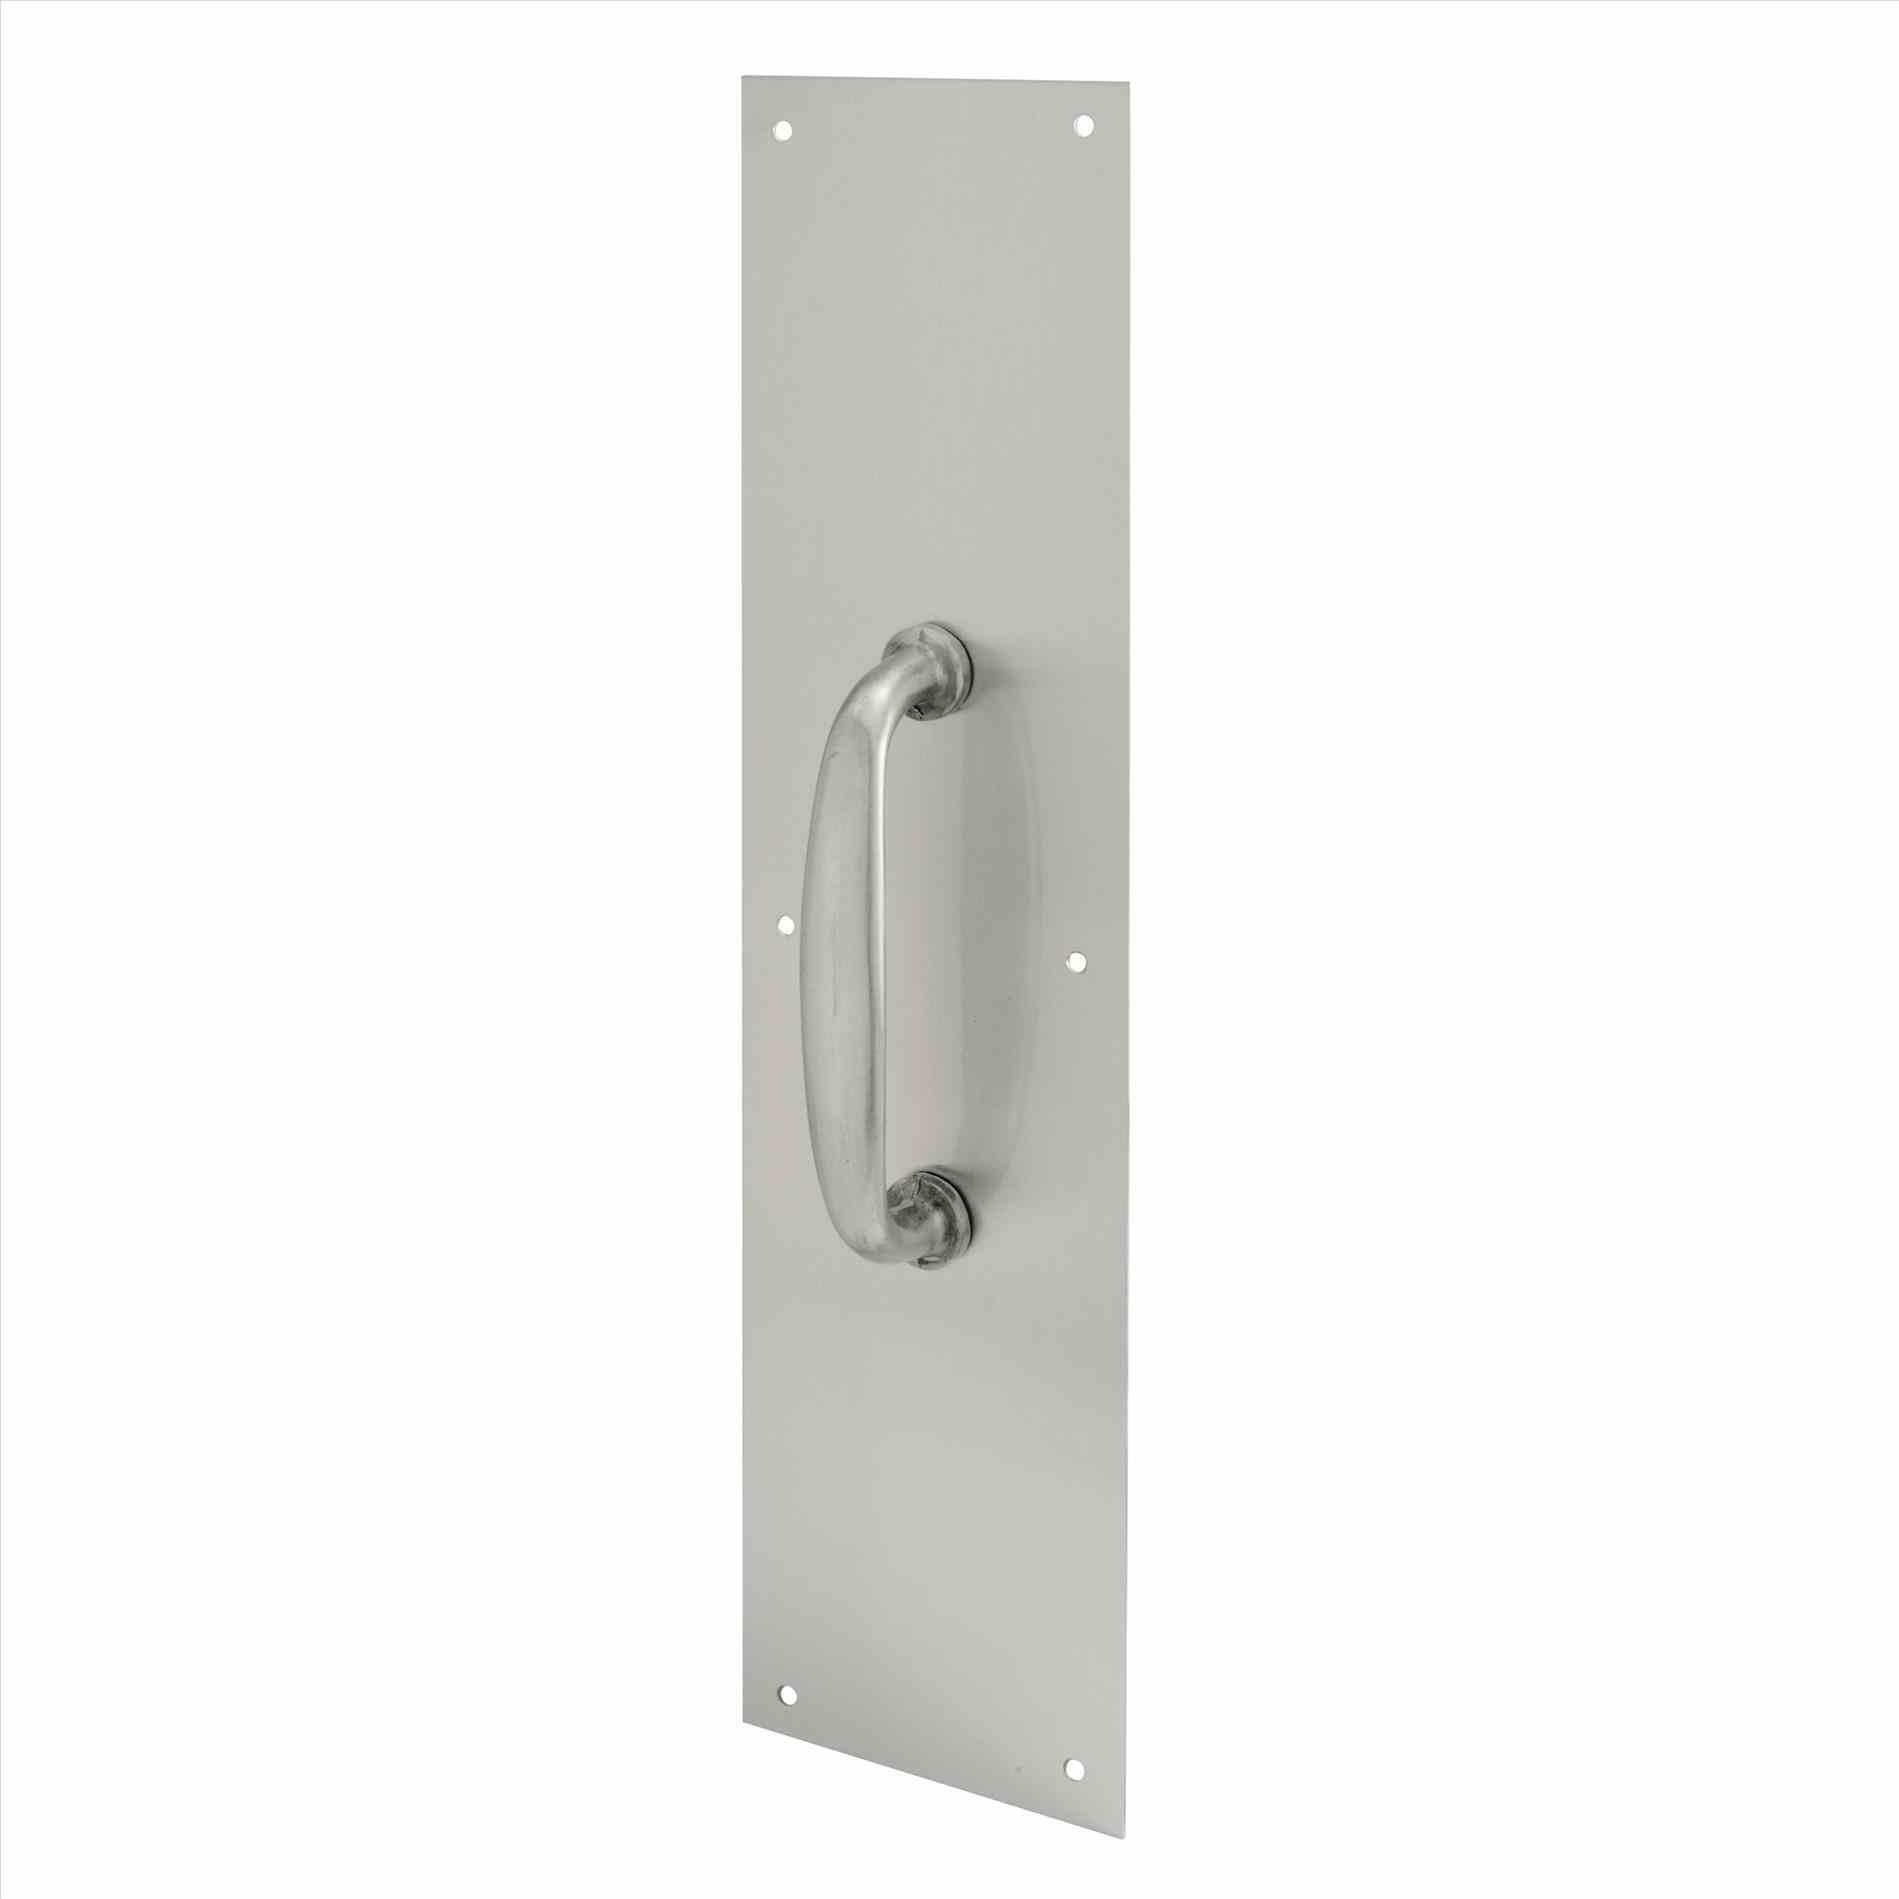 ideas simple gate types doors almosthomedogdaycare lock door www latch double